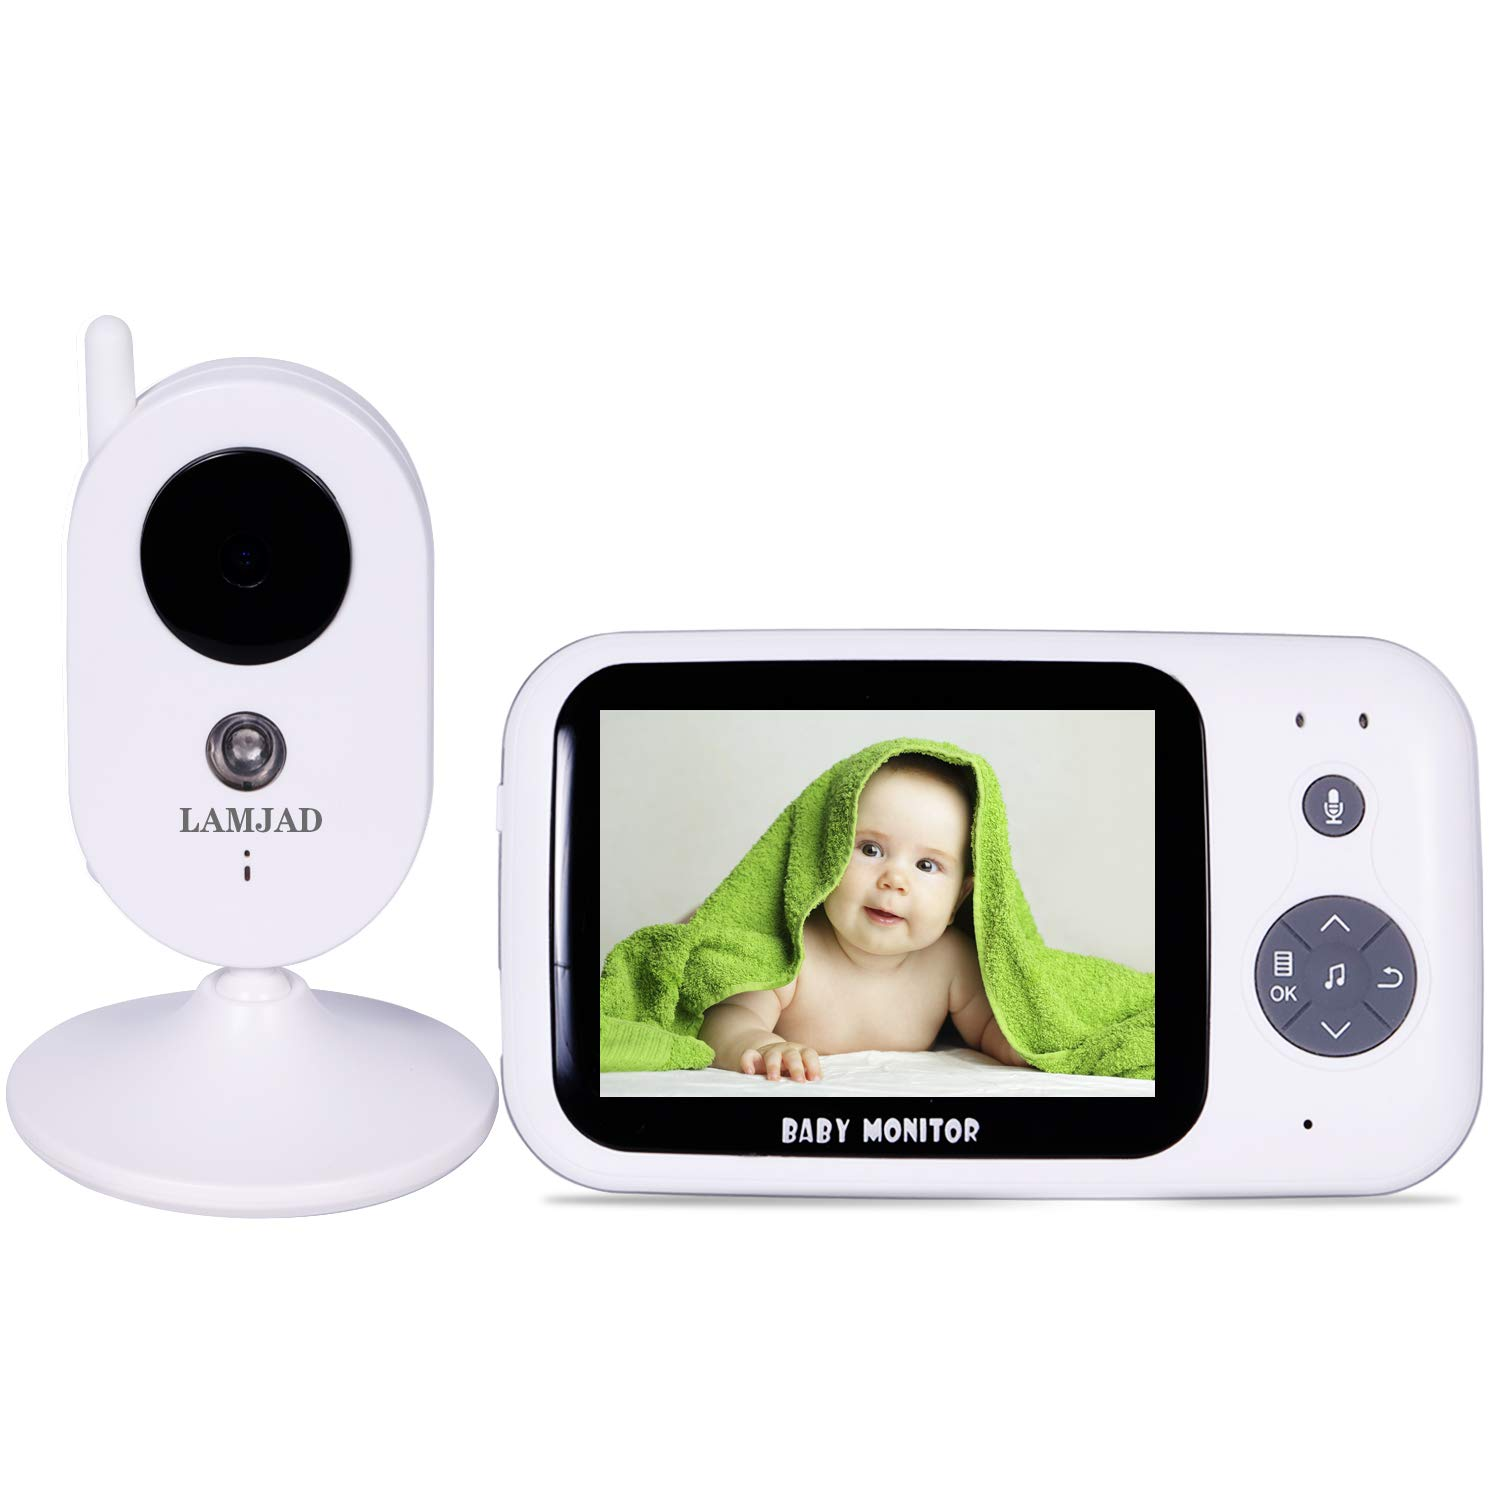 Baby Monitor, LAMJAD 3.2'' Video Baby Monitor with Camera and Audio, Auto Night Vision,Two-Way Talk, Temperature Monitor, VOX Mode, 8 Lullabies, 1000ft Range and Long Battery Life